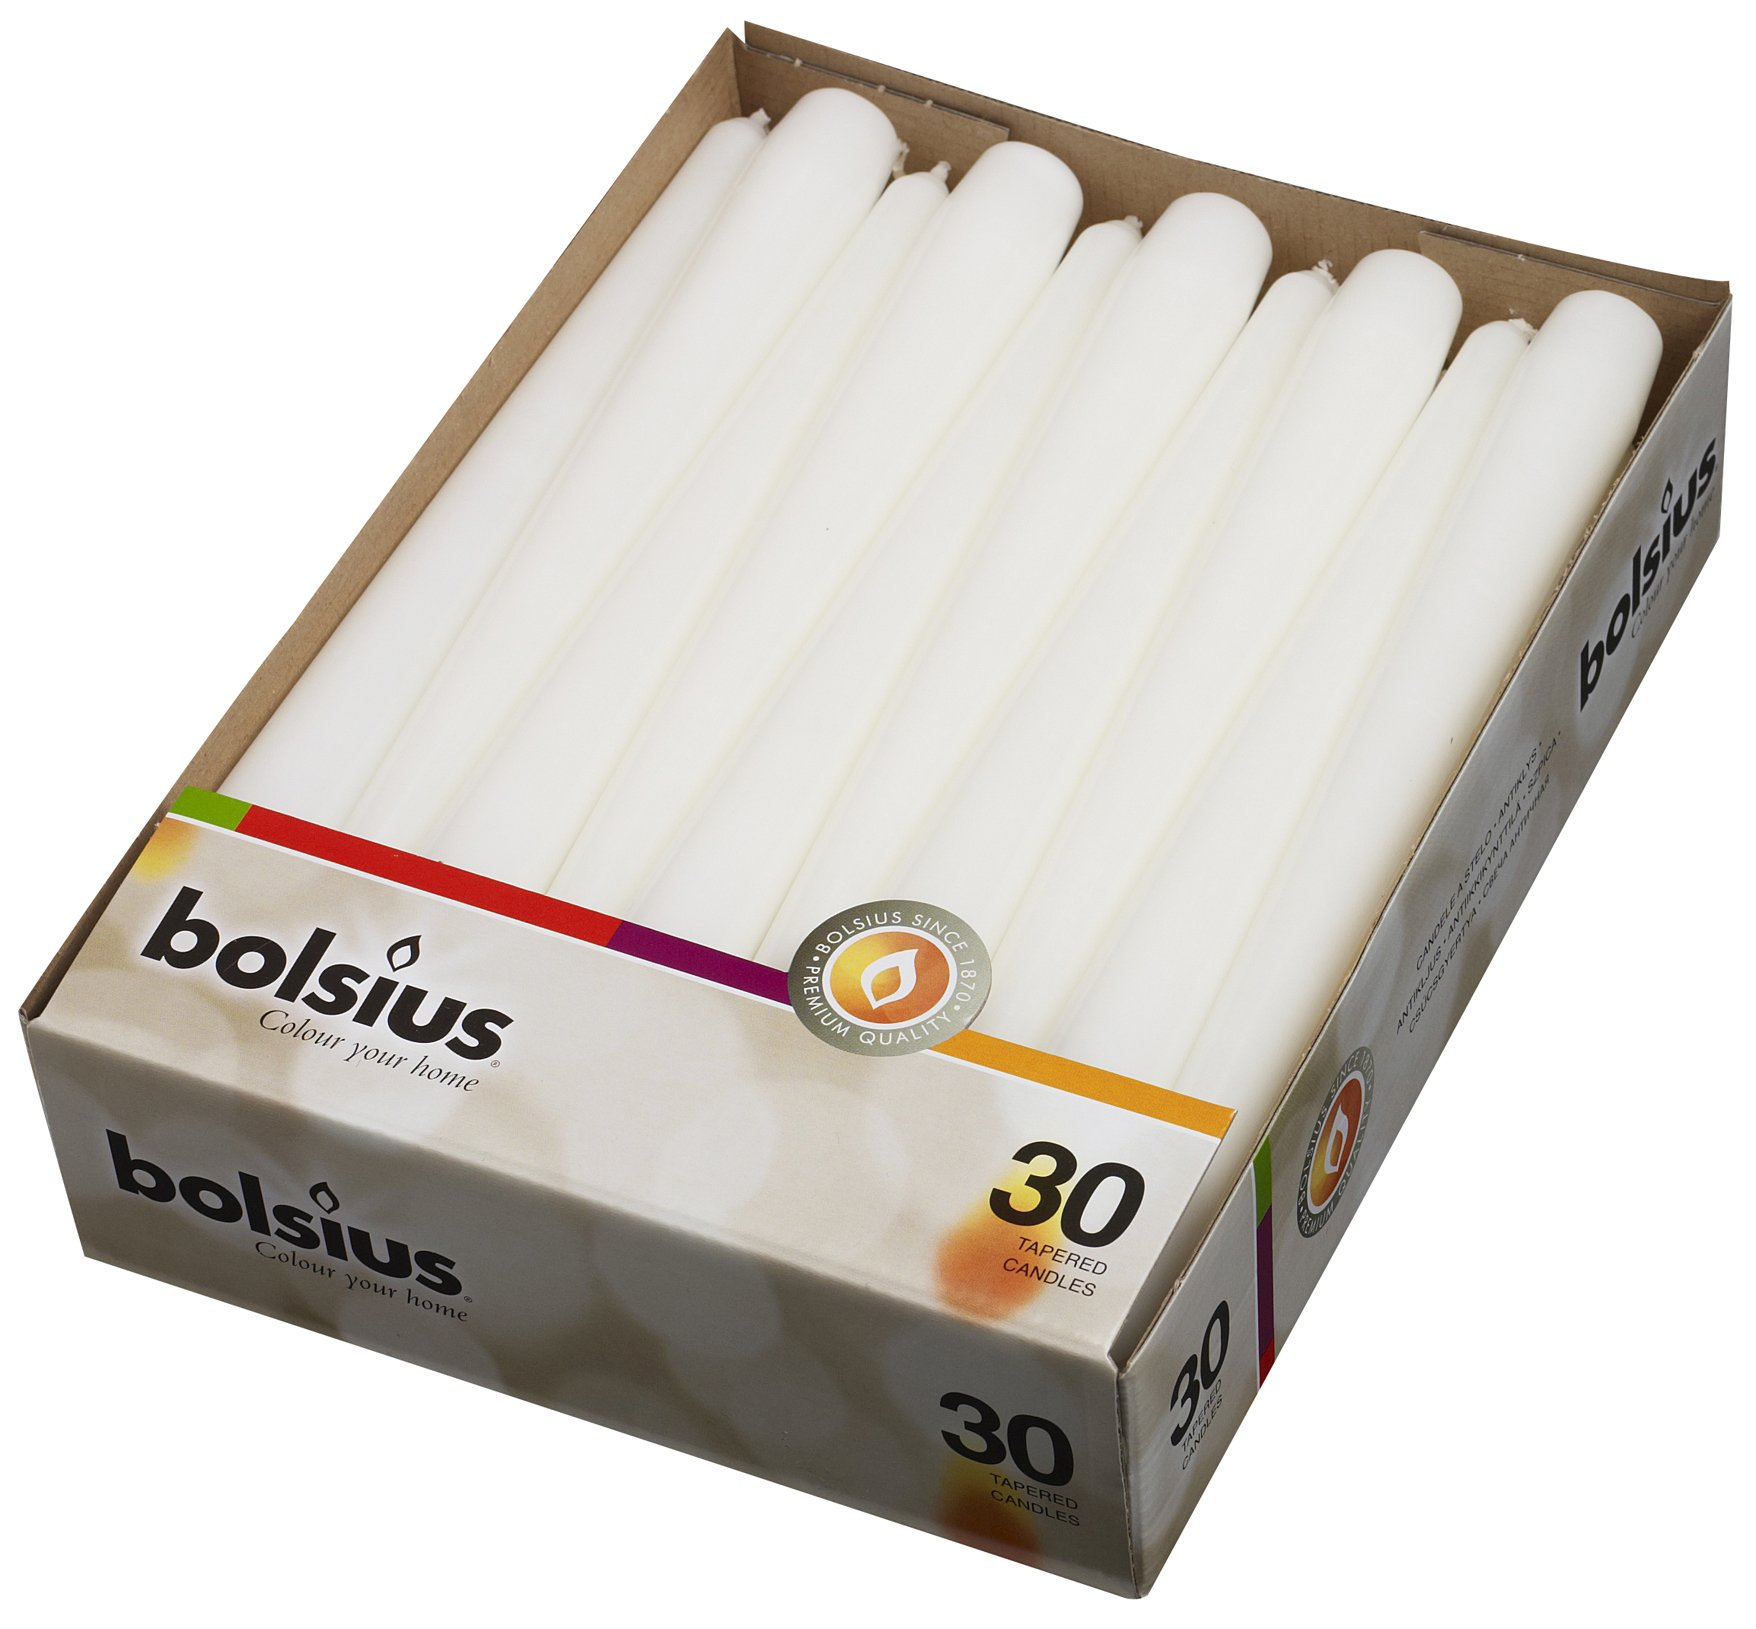 Bolsius Set of 30 White Tapered Candles 10 Inch